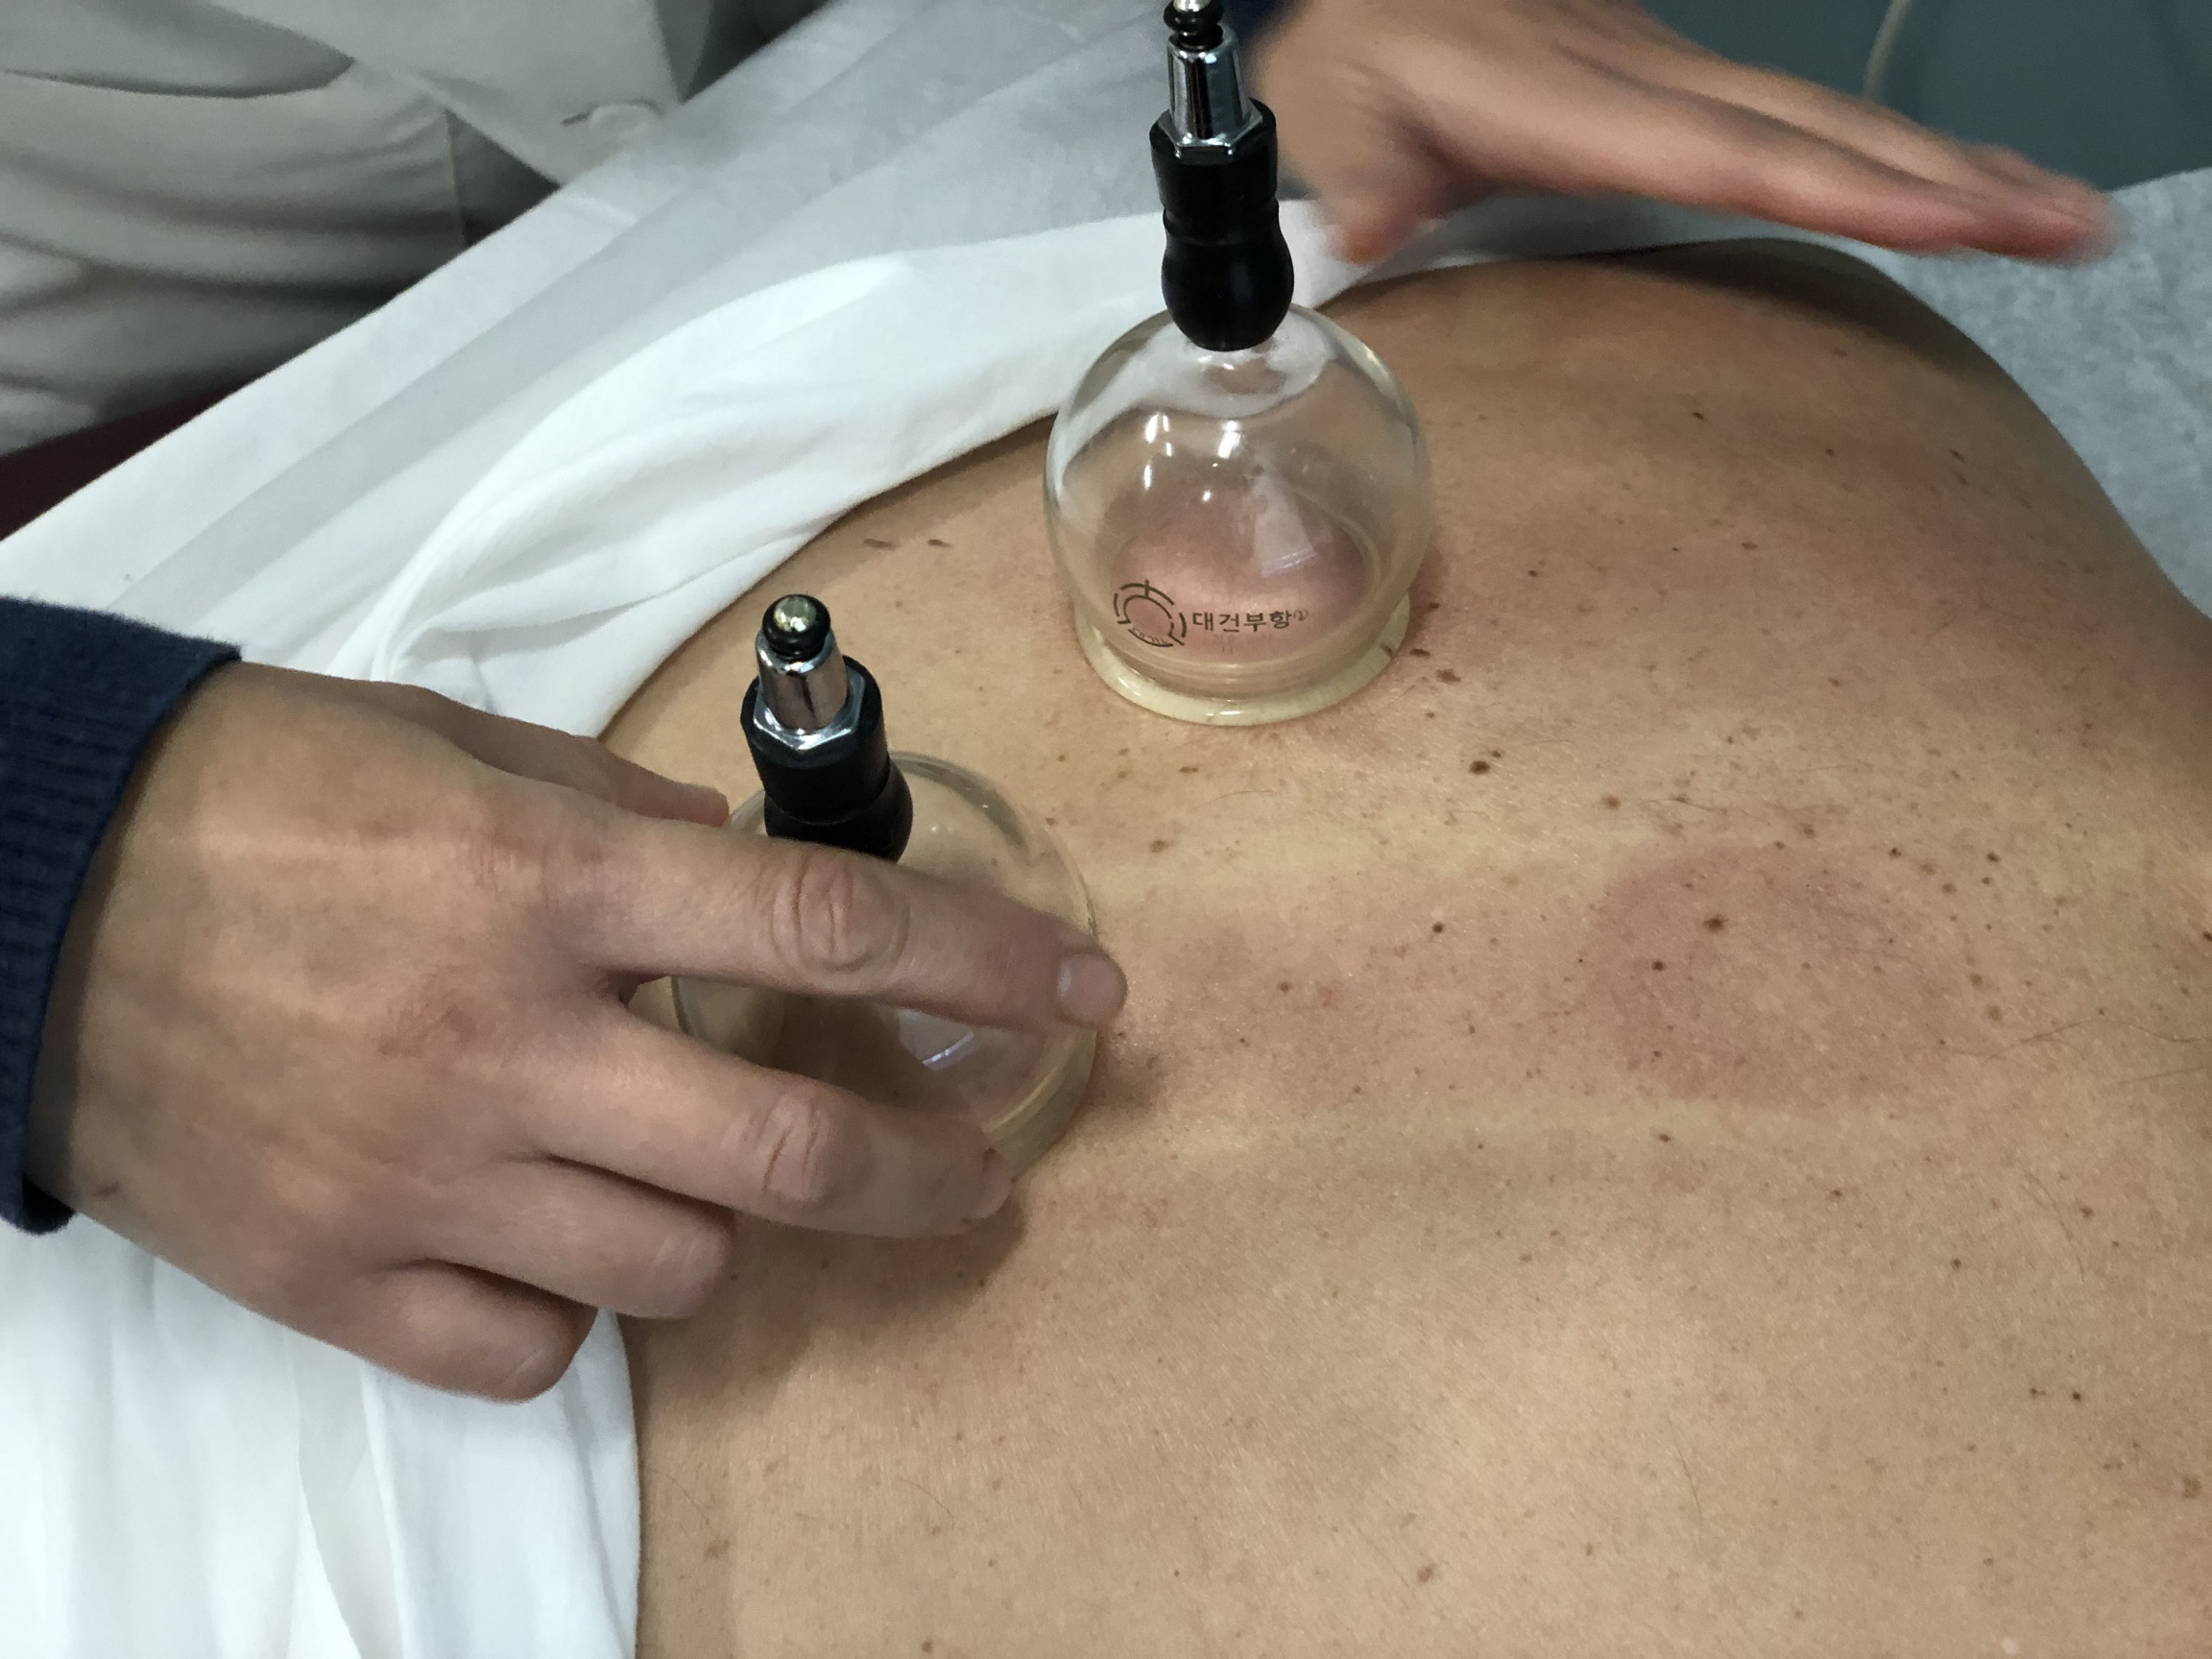 Quan Zhou, a traditional Chinese medicine practitioner, performs a cupping procedure on a patient's back at the New England School of Acupunctu